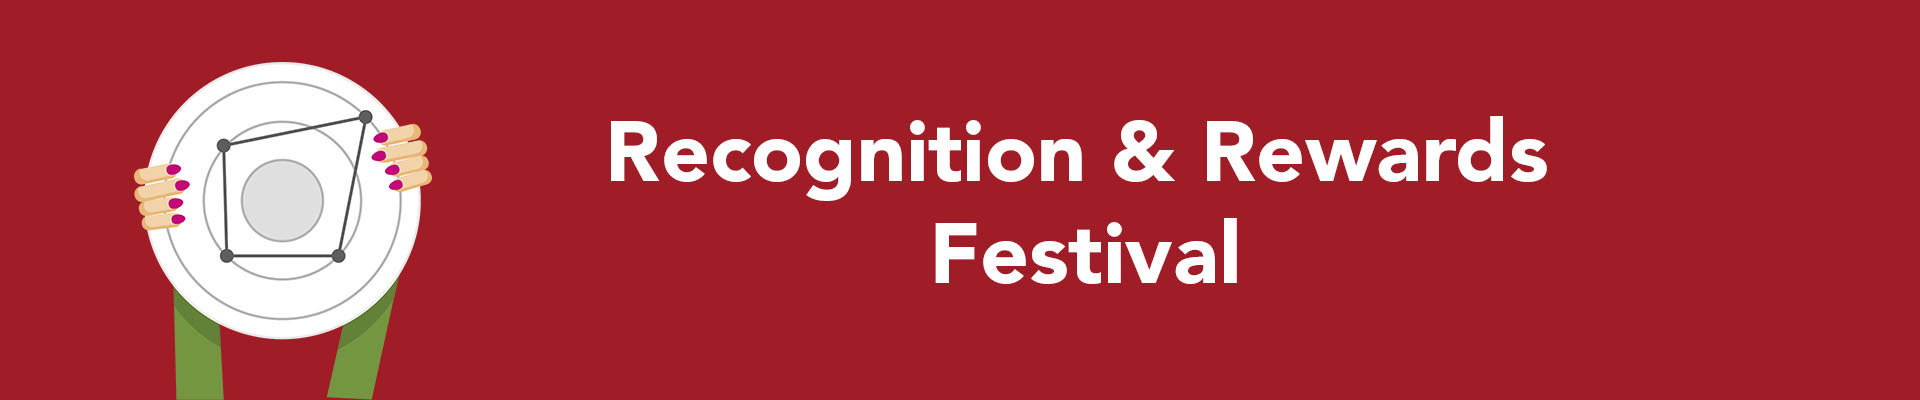 Recognition & Rewardsfestival